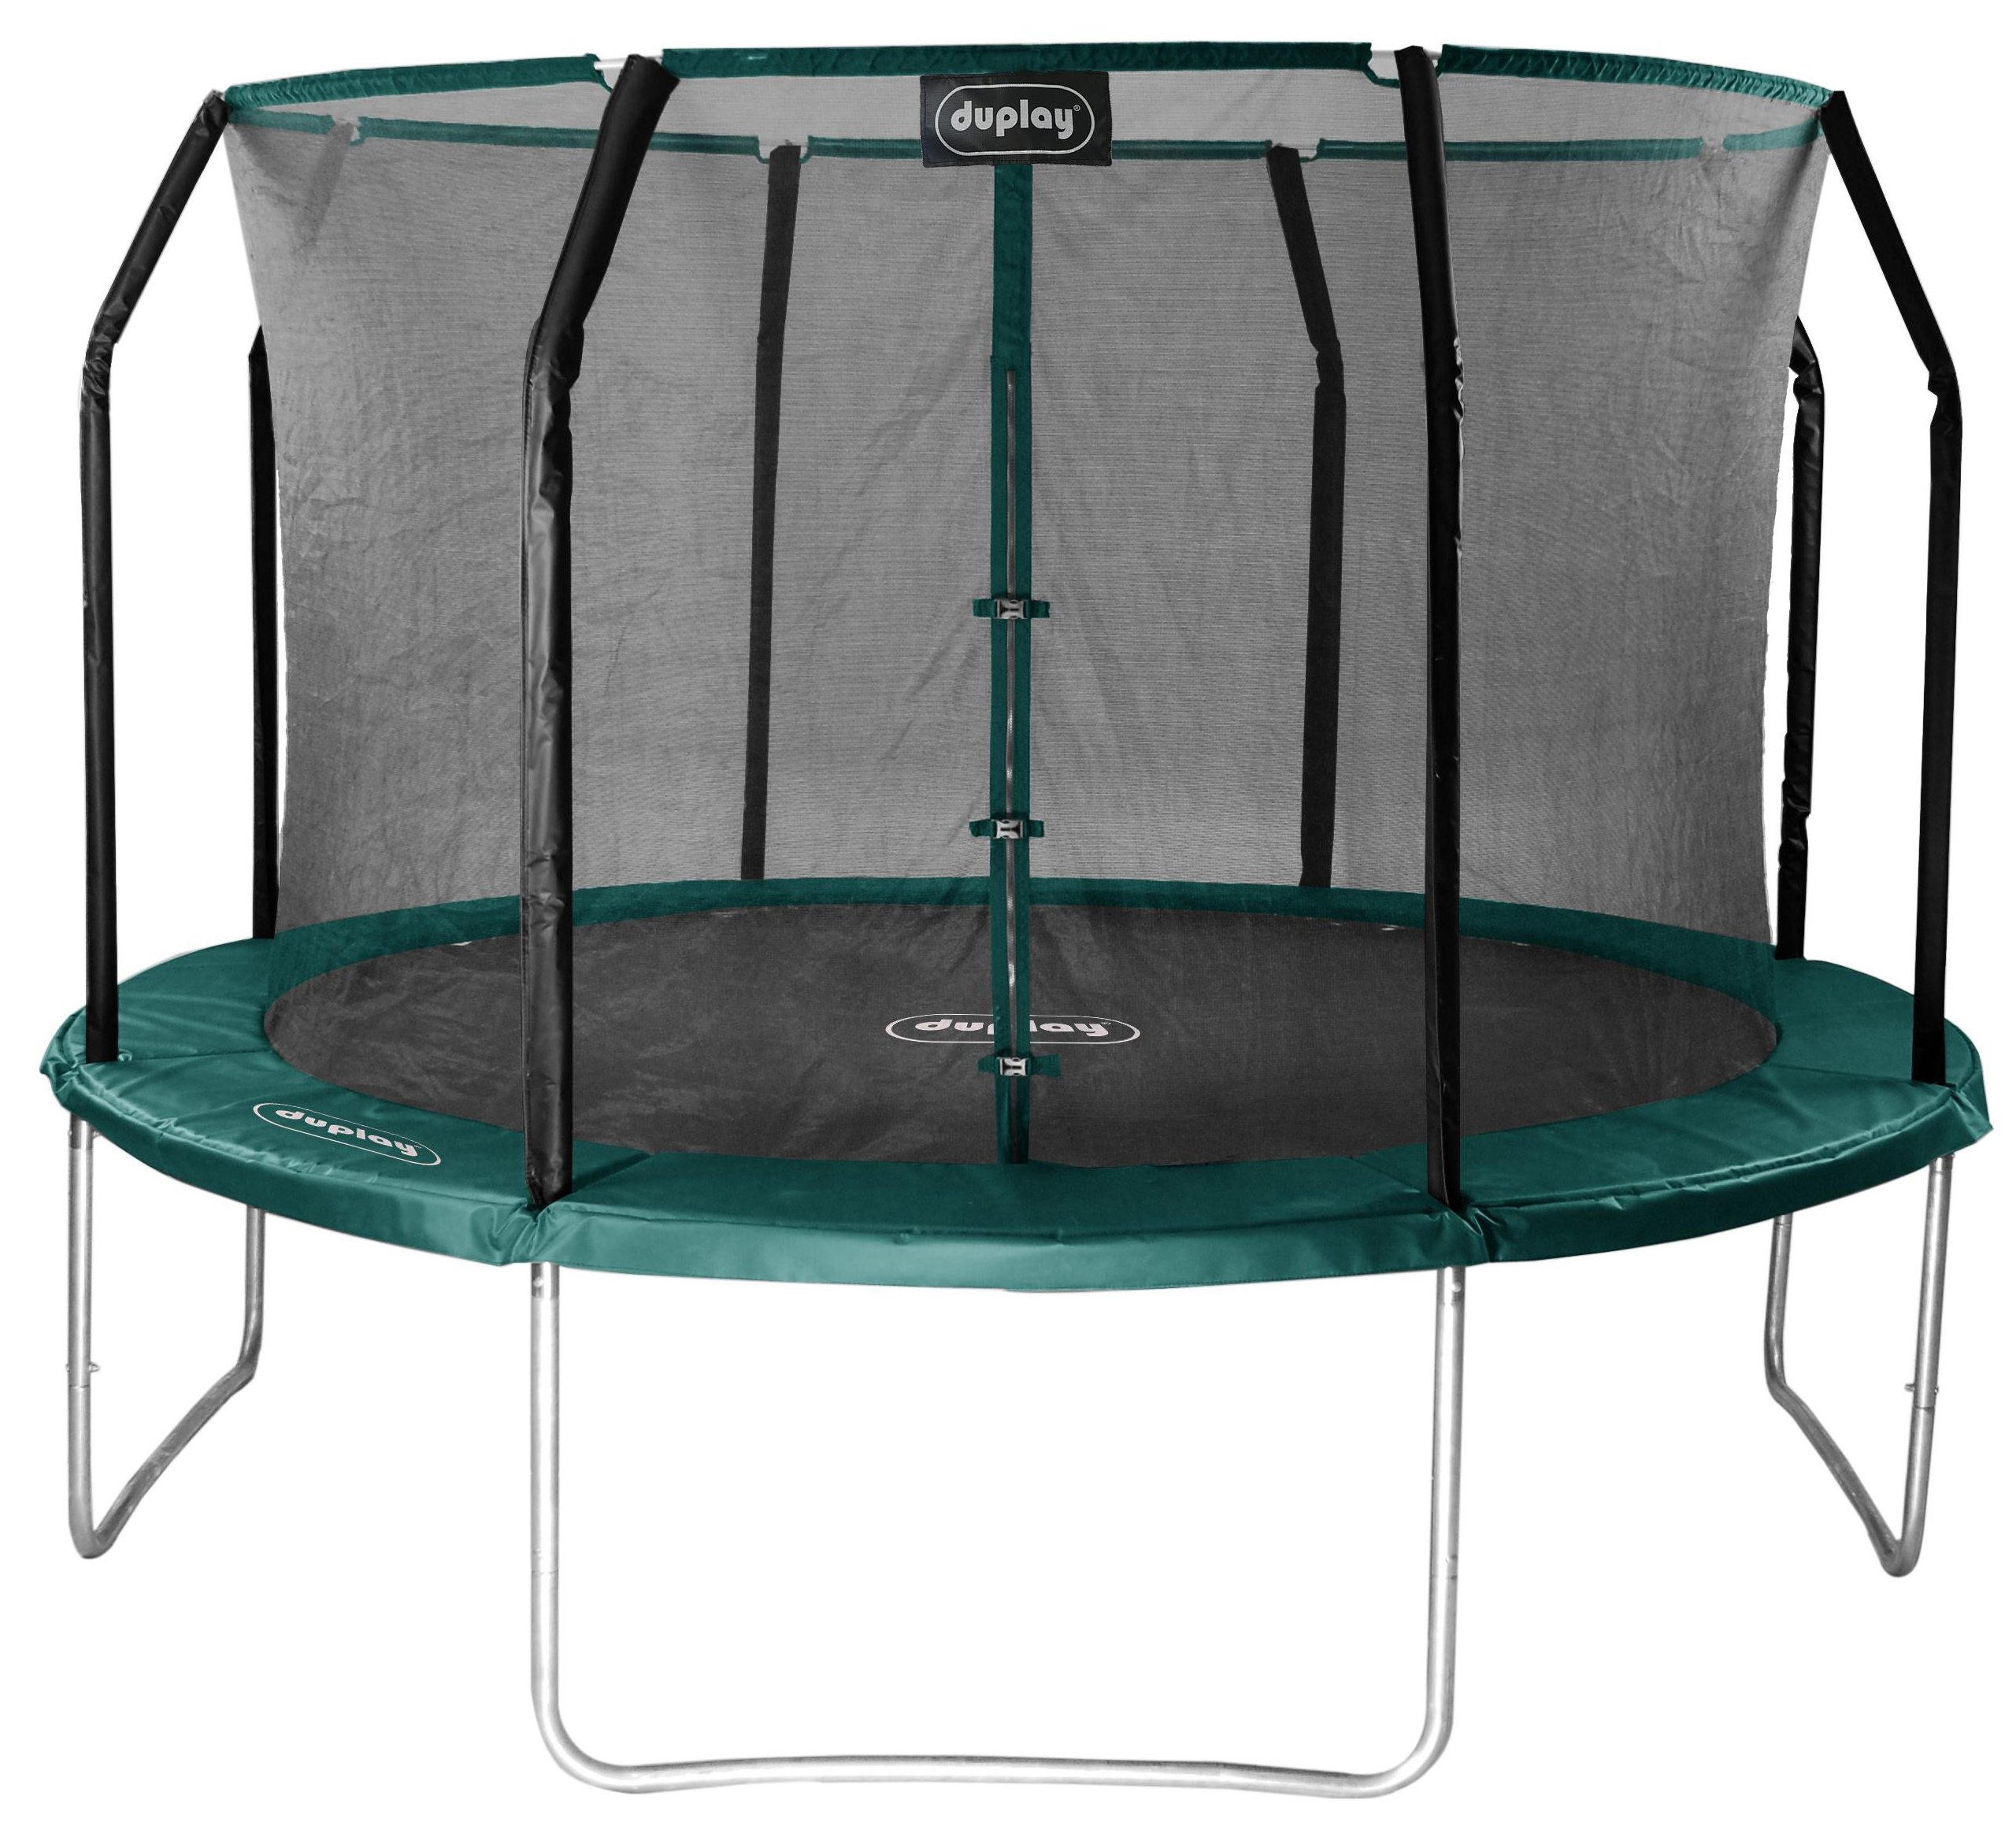 Duplay Ultimate 2.0 14ft Trampoline With Safety Enclosure